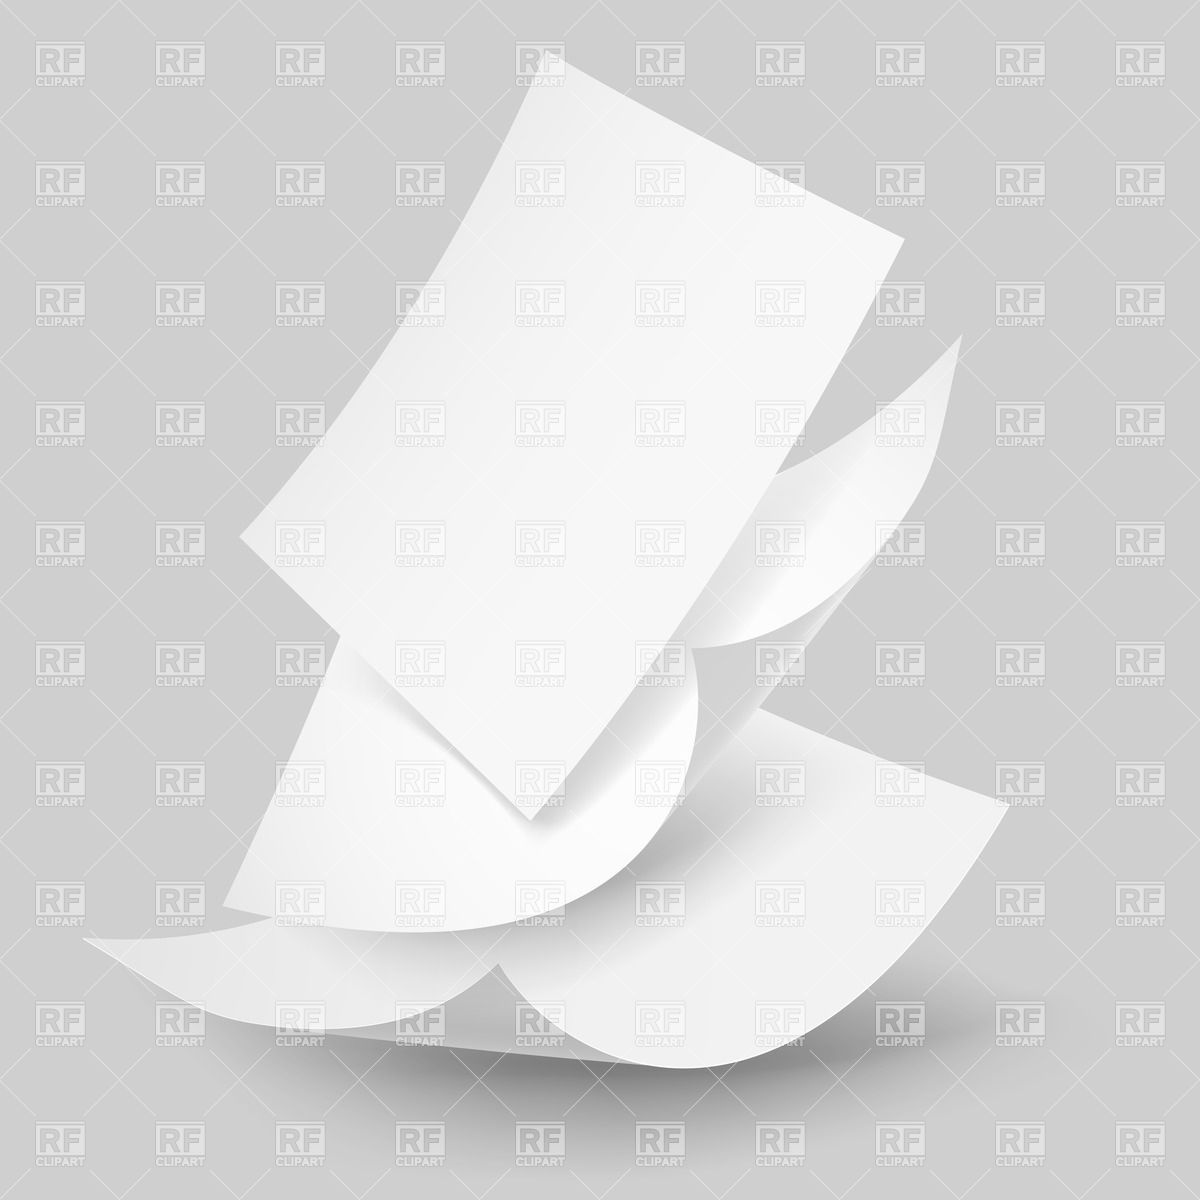 1200x1200 Blank Falling Down Paper Sheets Vector Image Vector Artwork Of